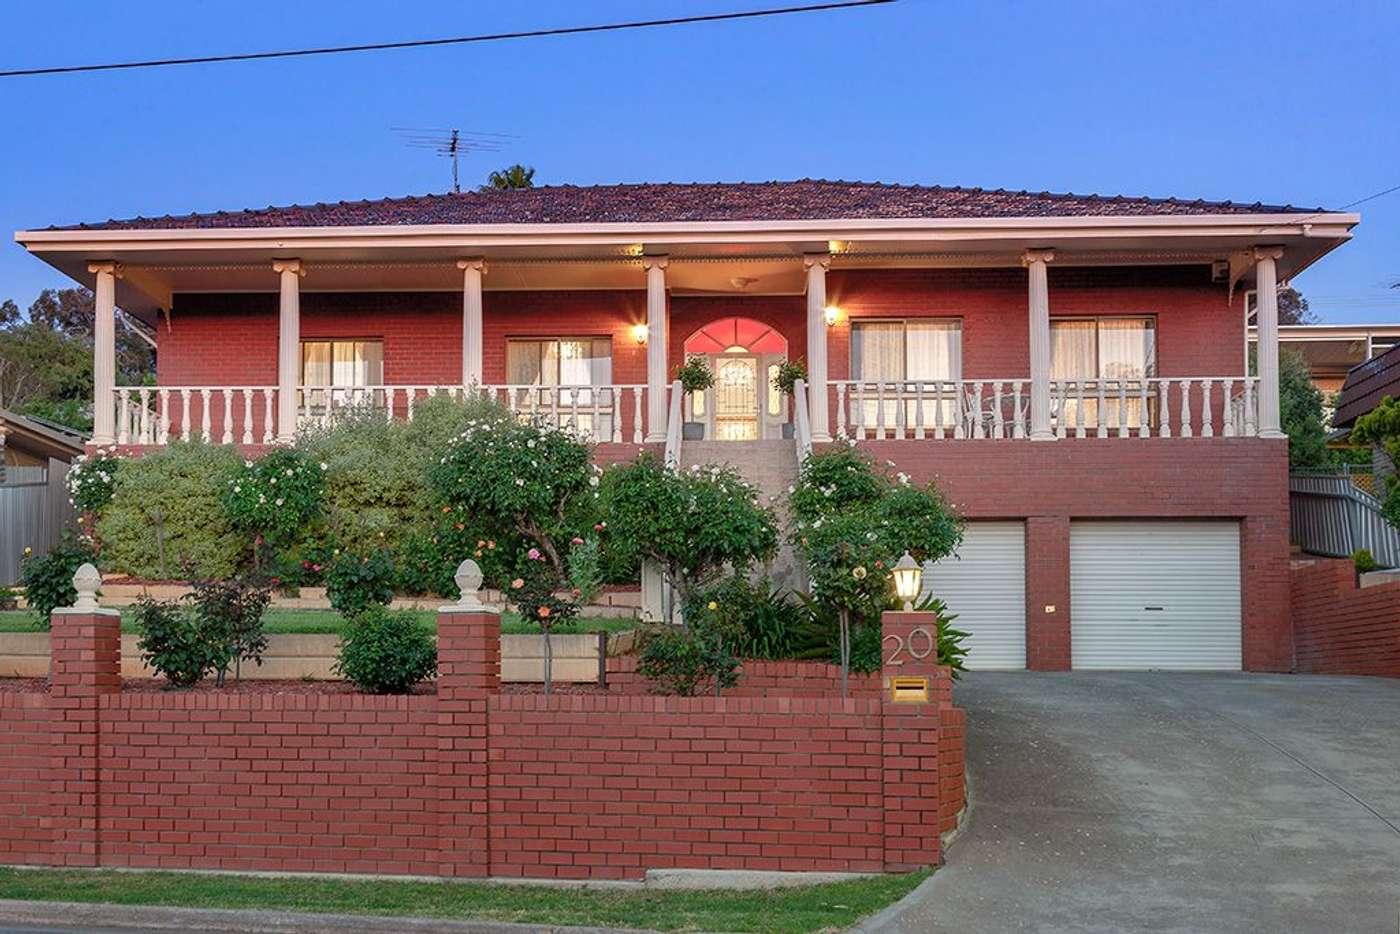 Main view of Homely house listing, 20 Wandana Avenue, Seaview Downs SA 5049